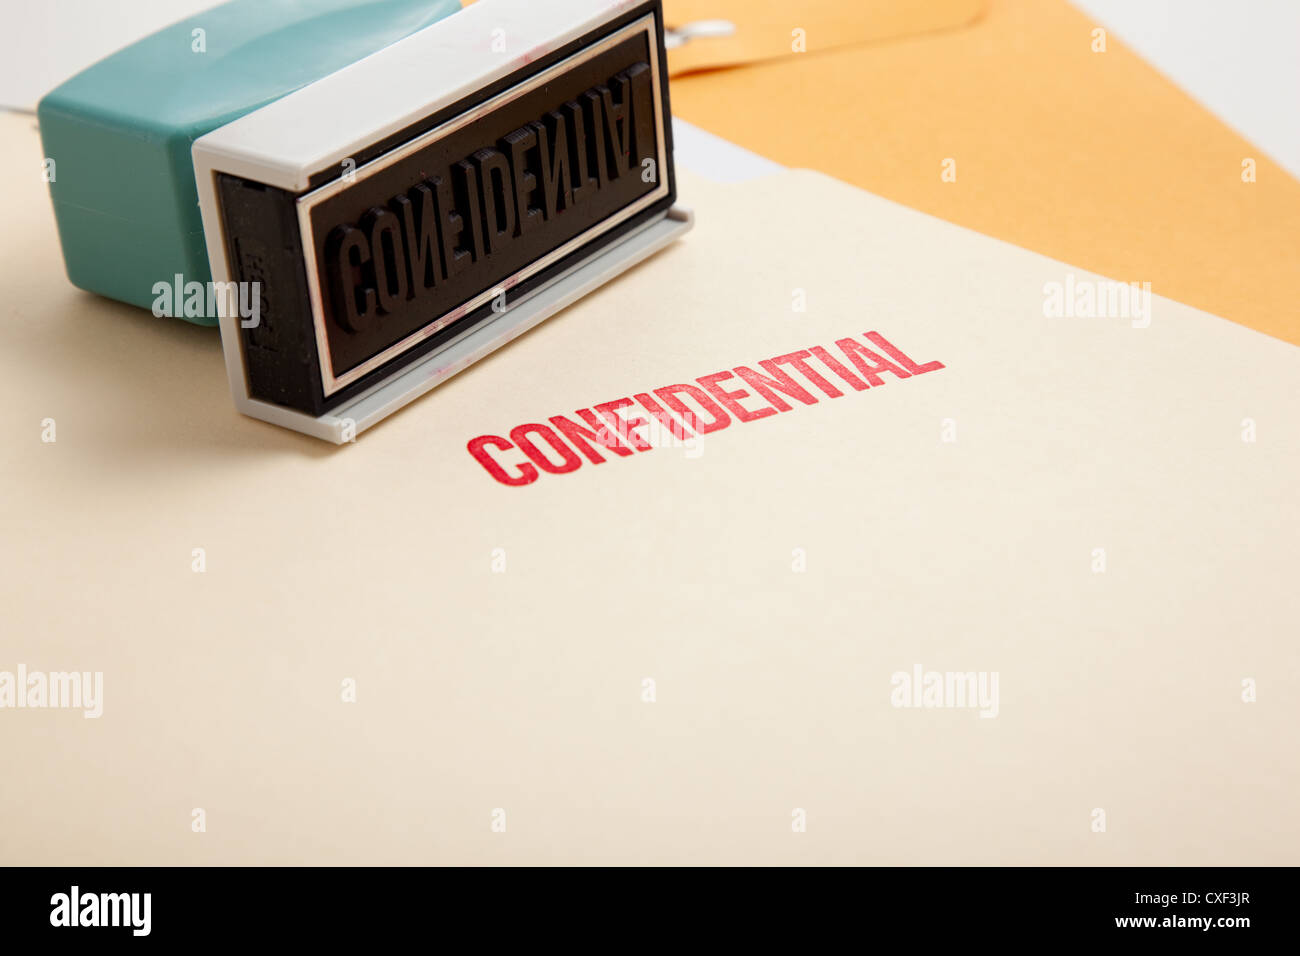 Confidential stamp on a file folder - Stock Image